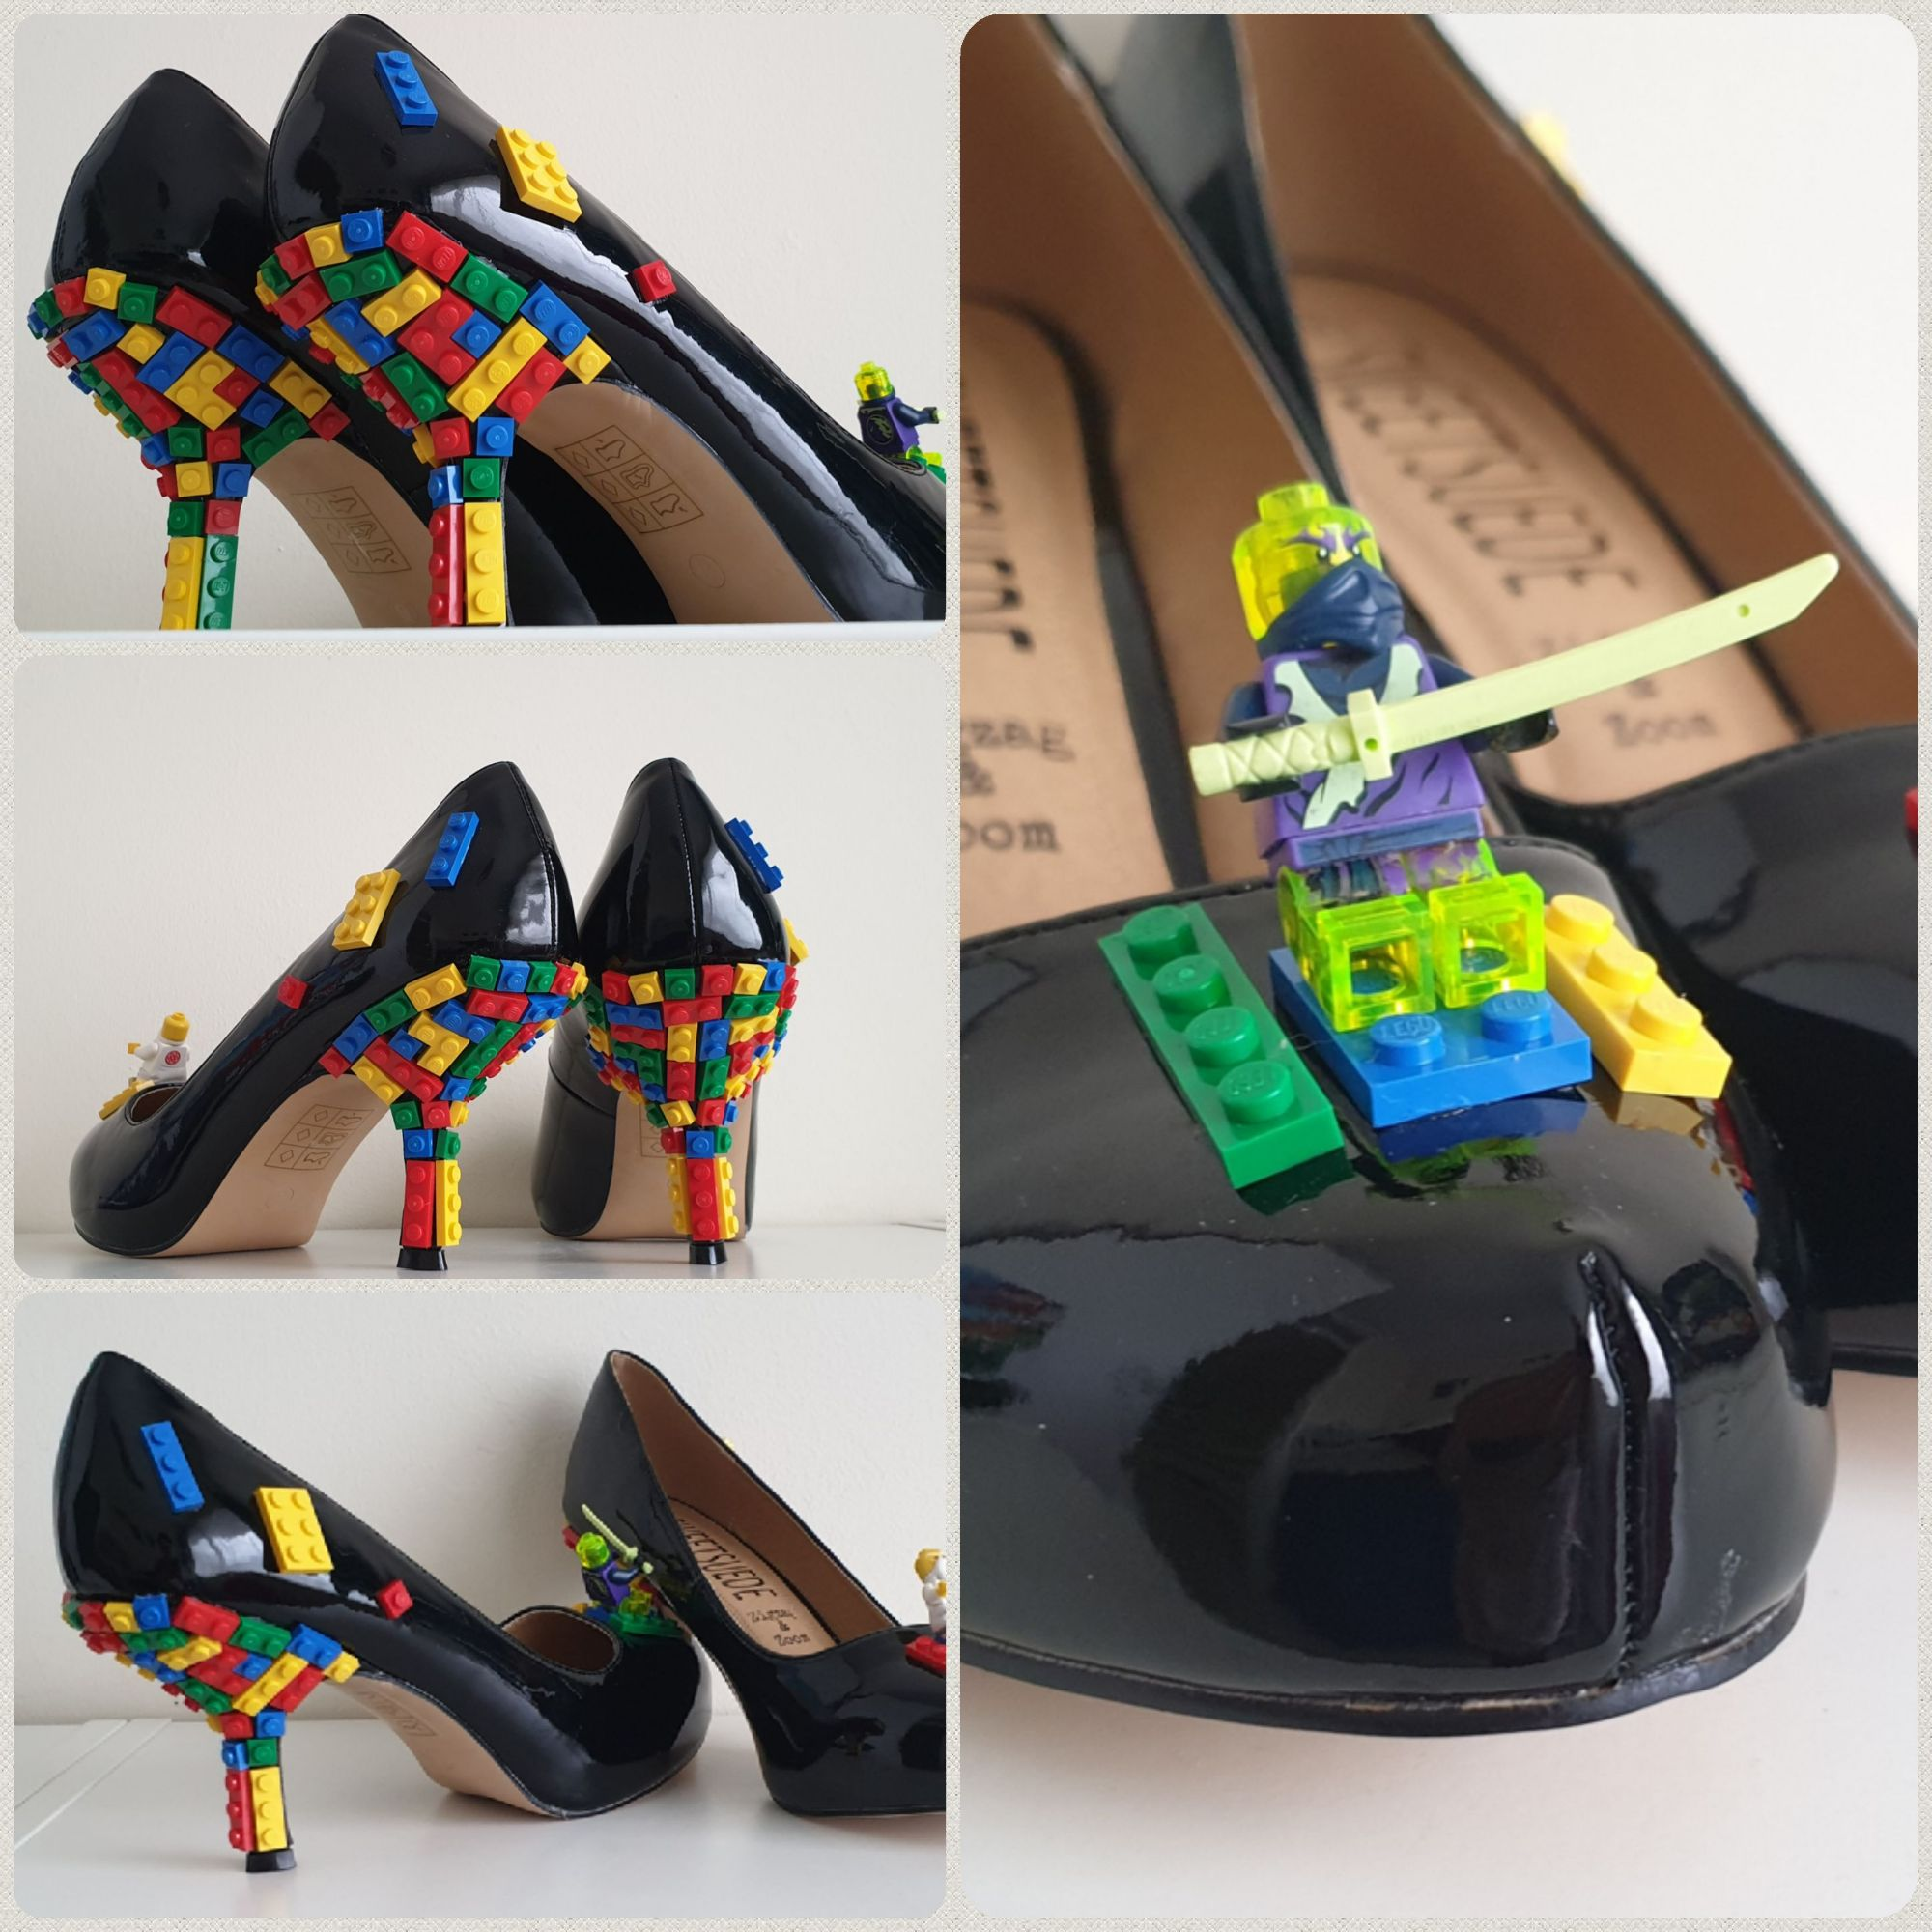 Customised Lego shoes